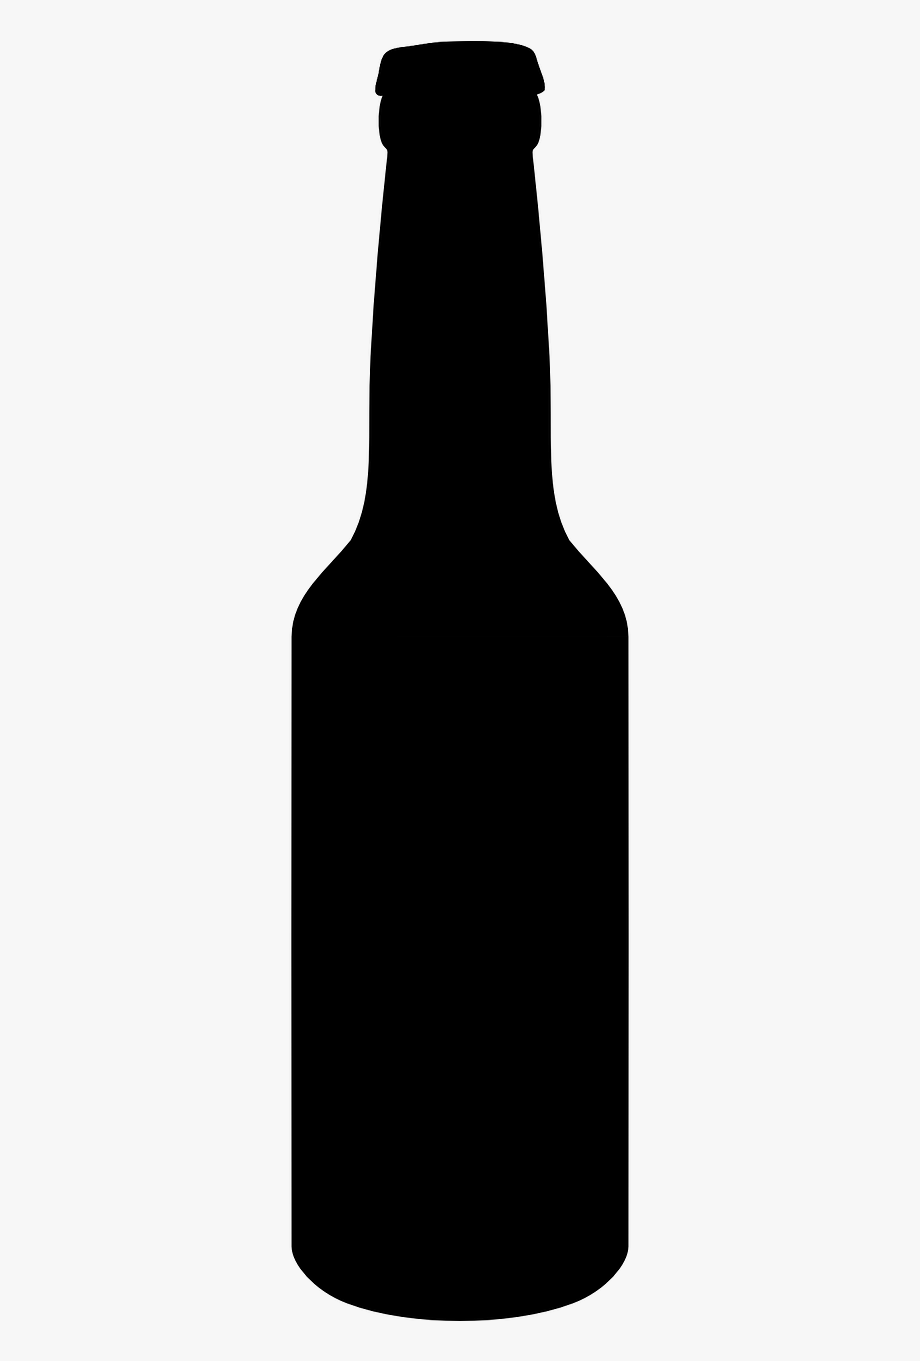 Beer bottle clipart black and white picture download Beer Bottle Silhouette #903583 - Free Cliparts on ClipartWiki picture download